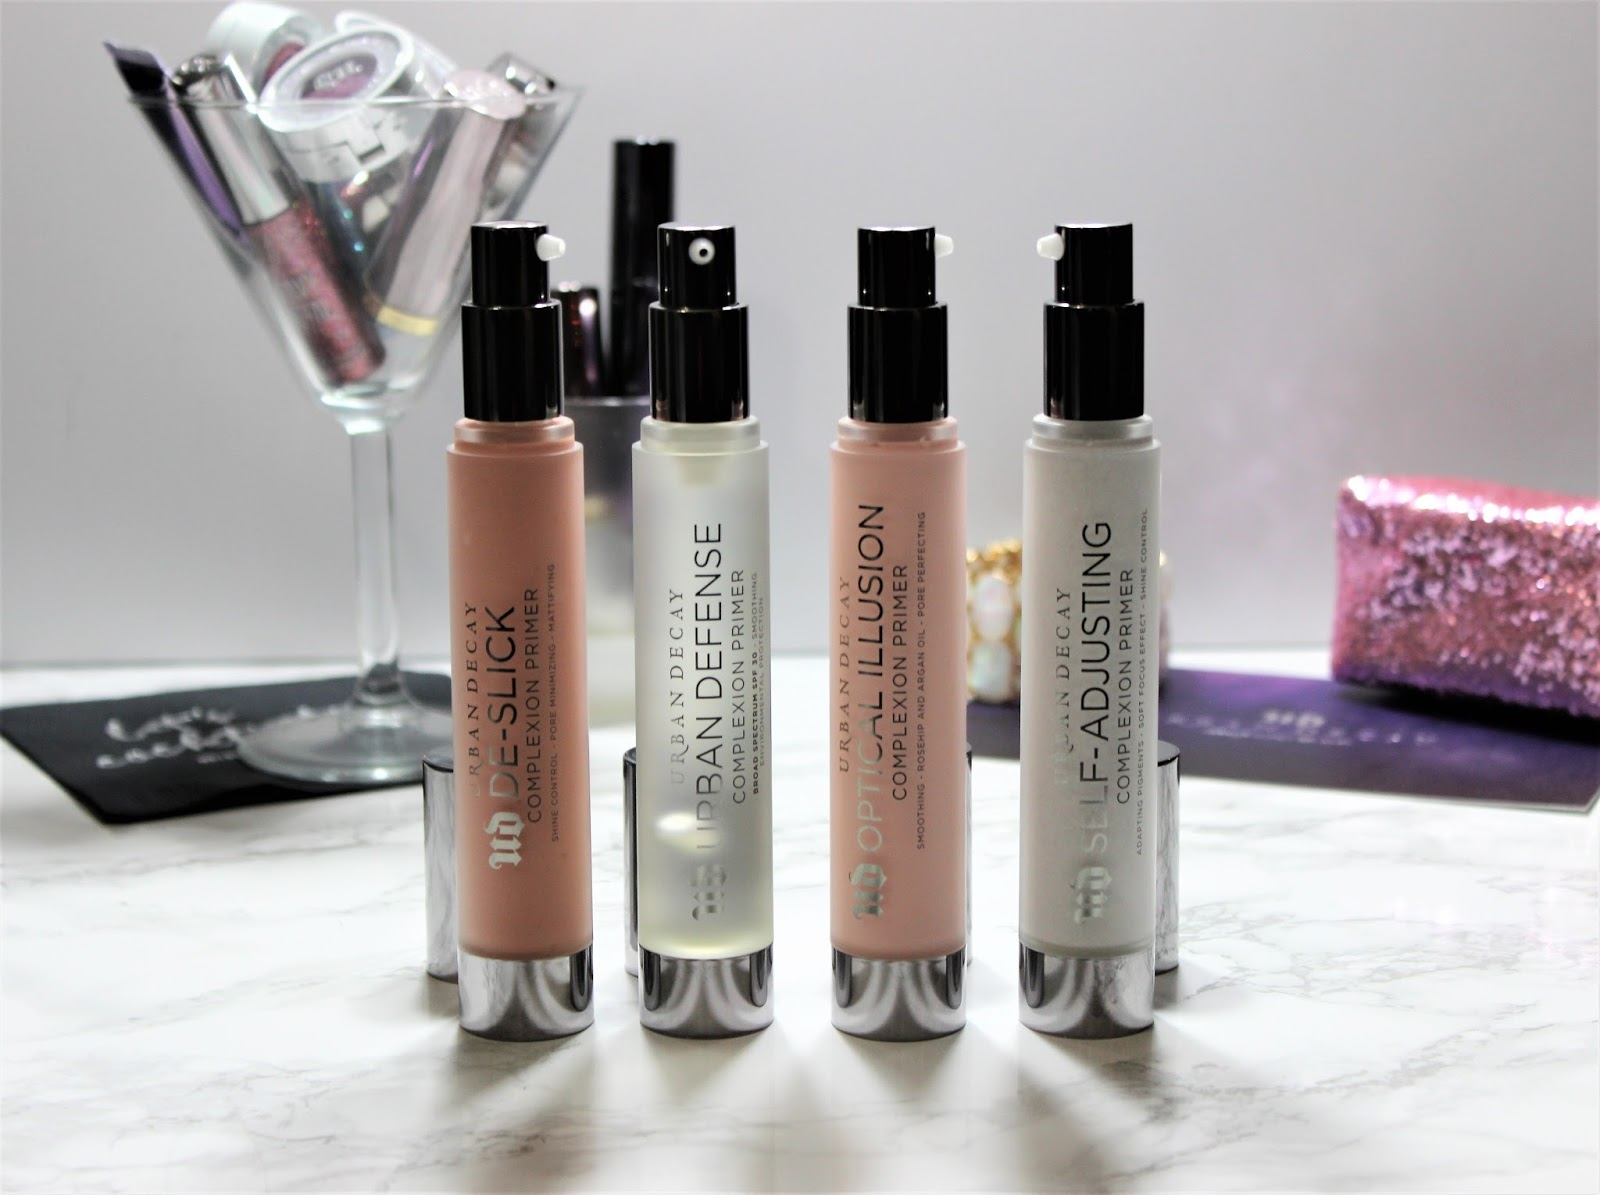 Urban Decay Primer Review